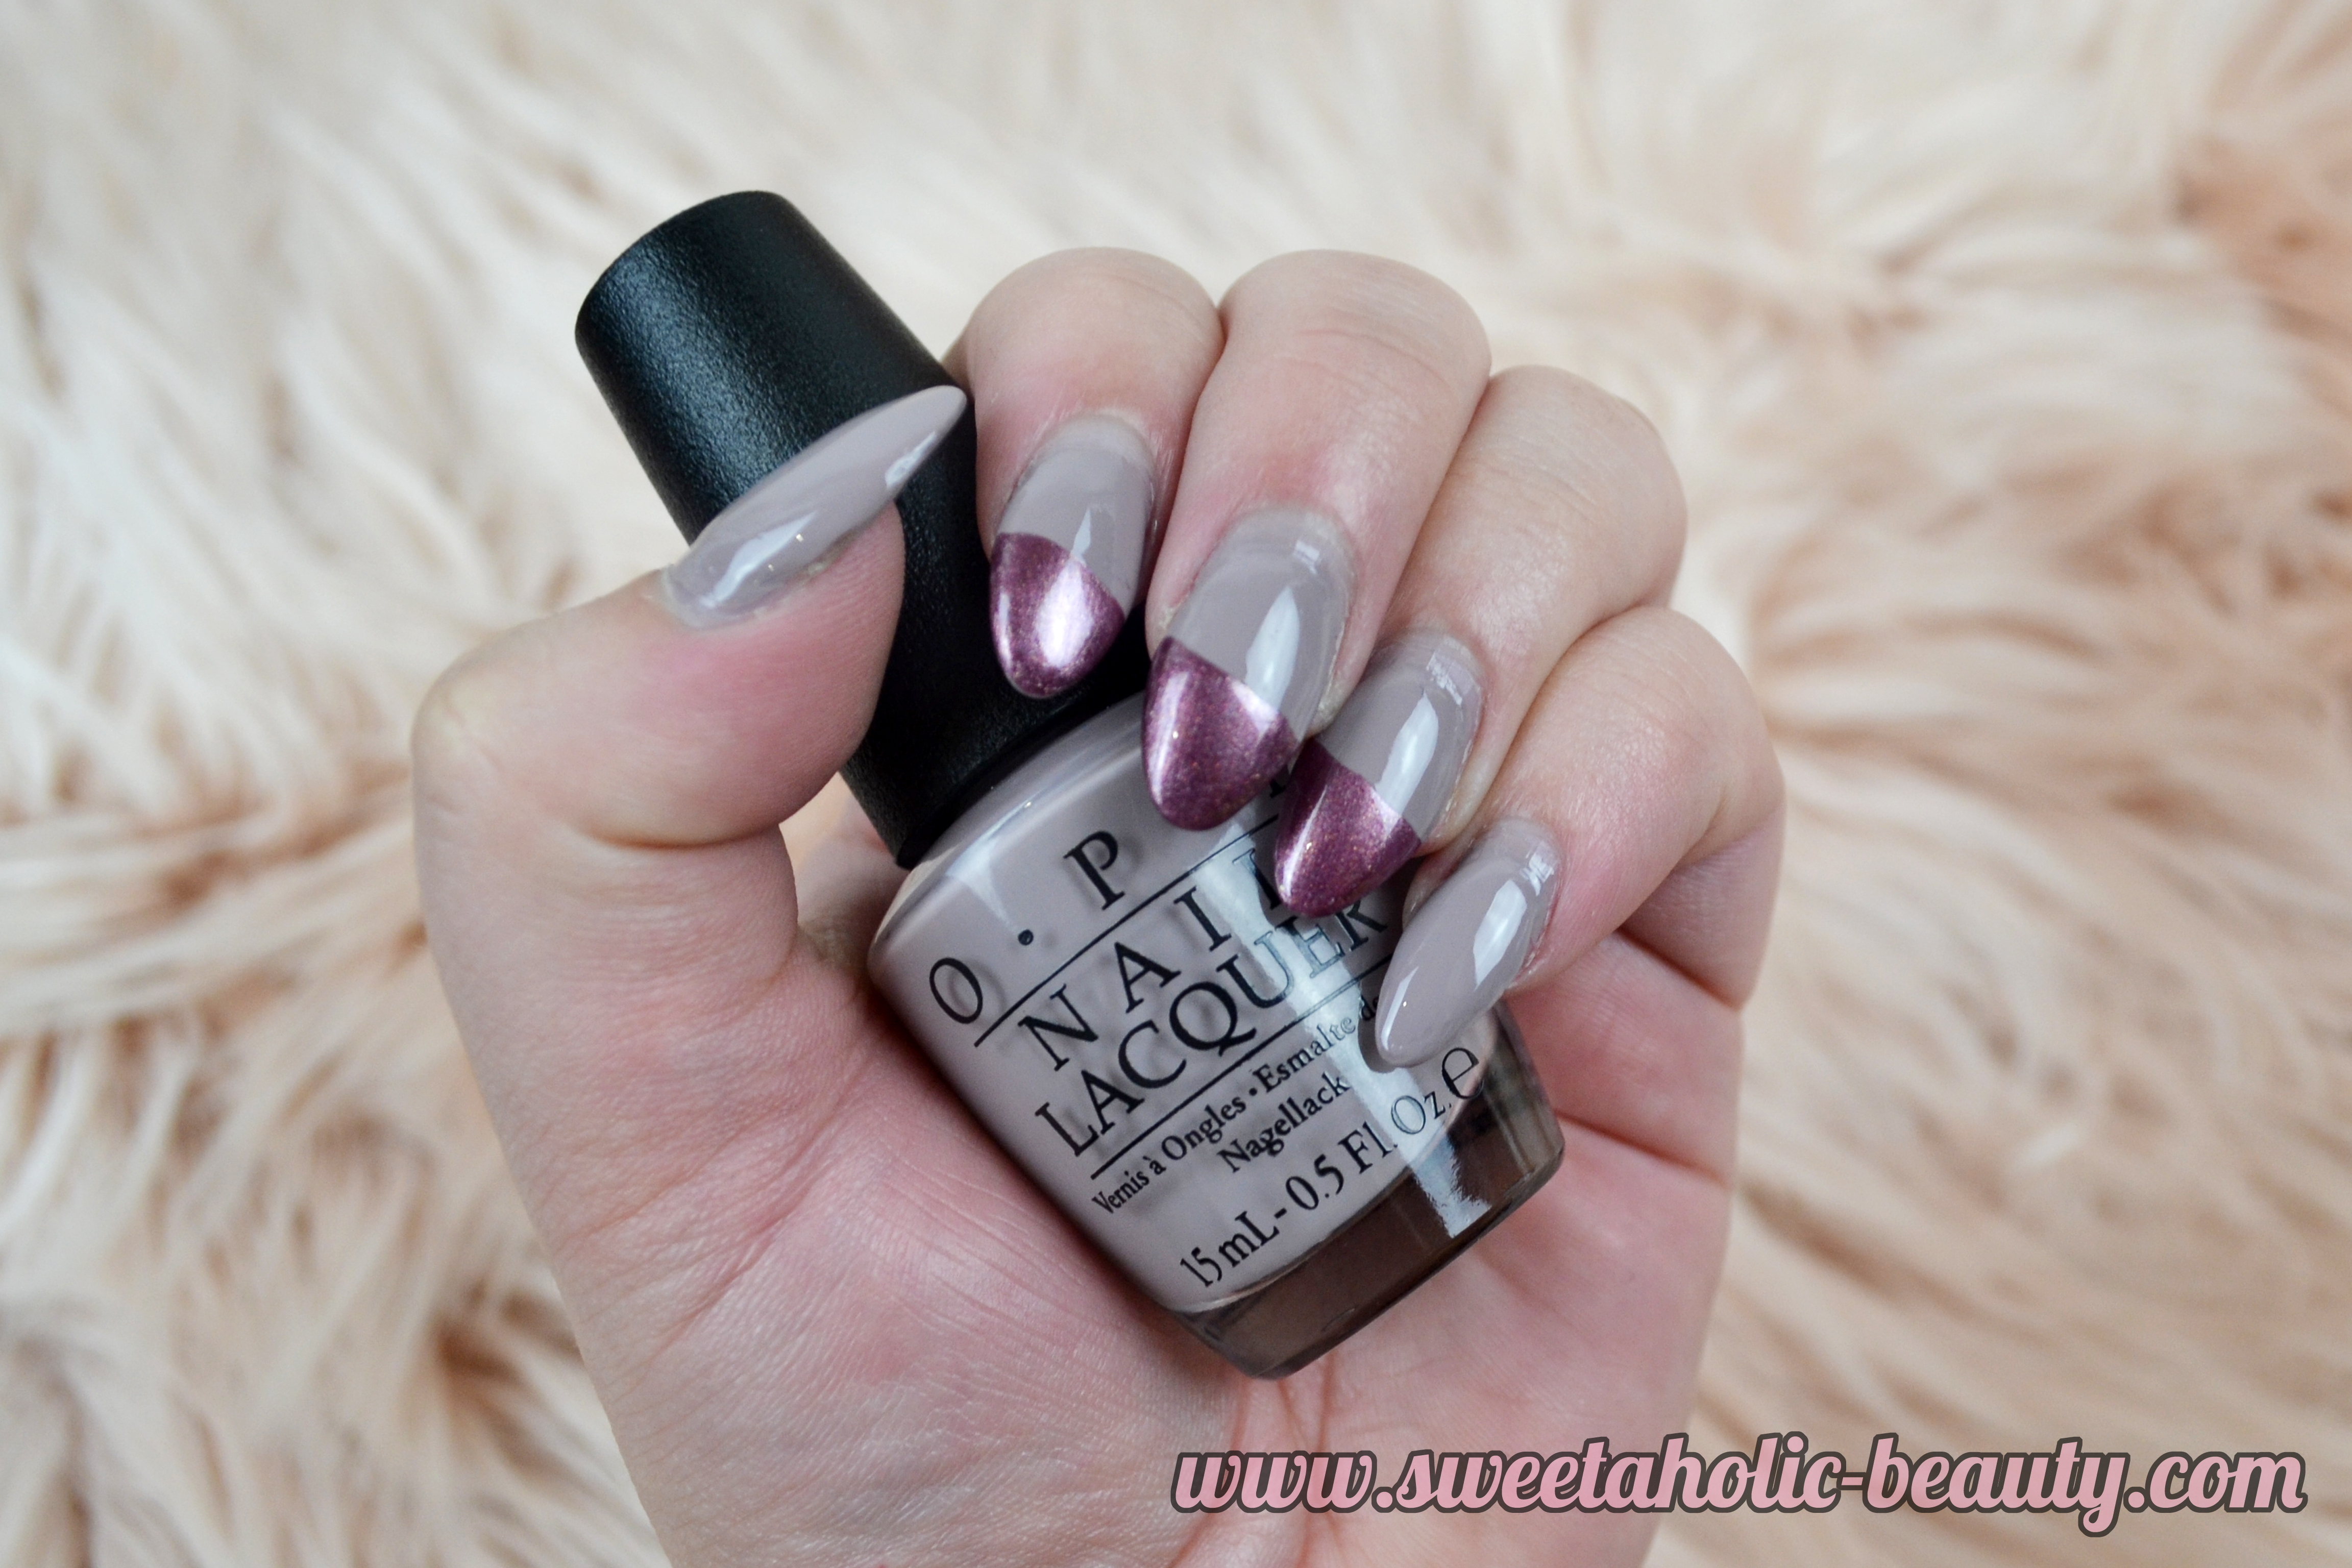 NOTD: Autumn Nails - Sweetaholic Beauty